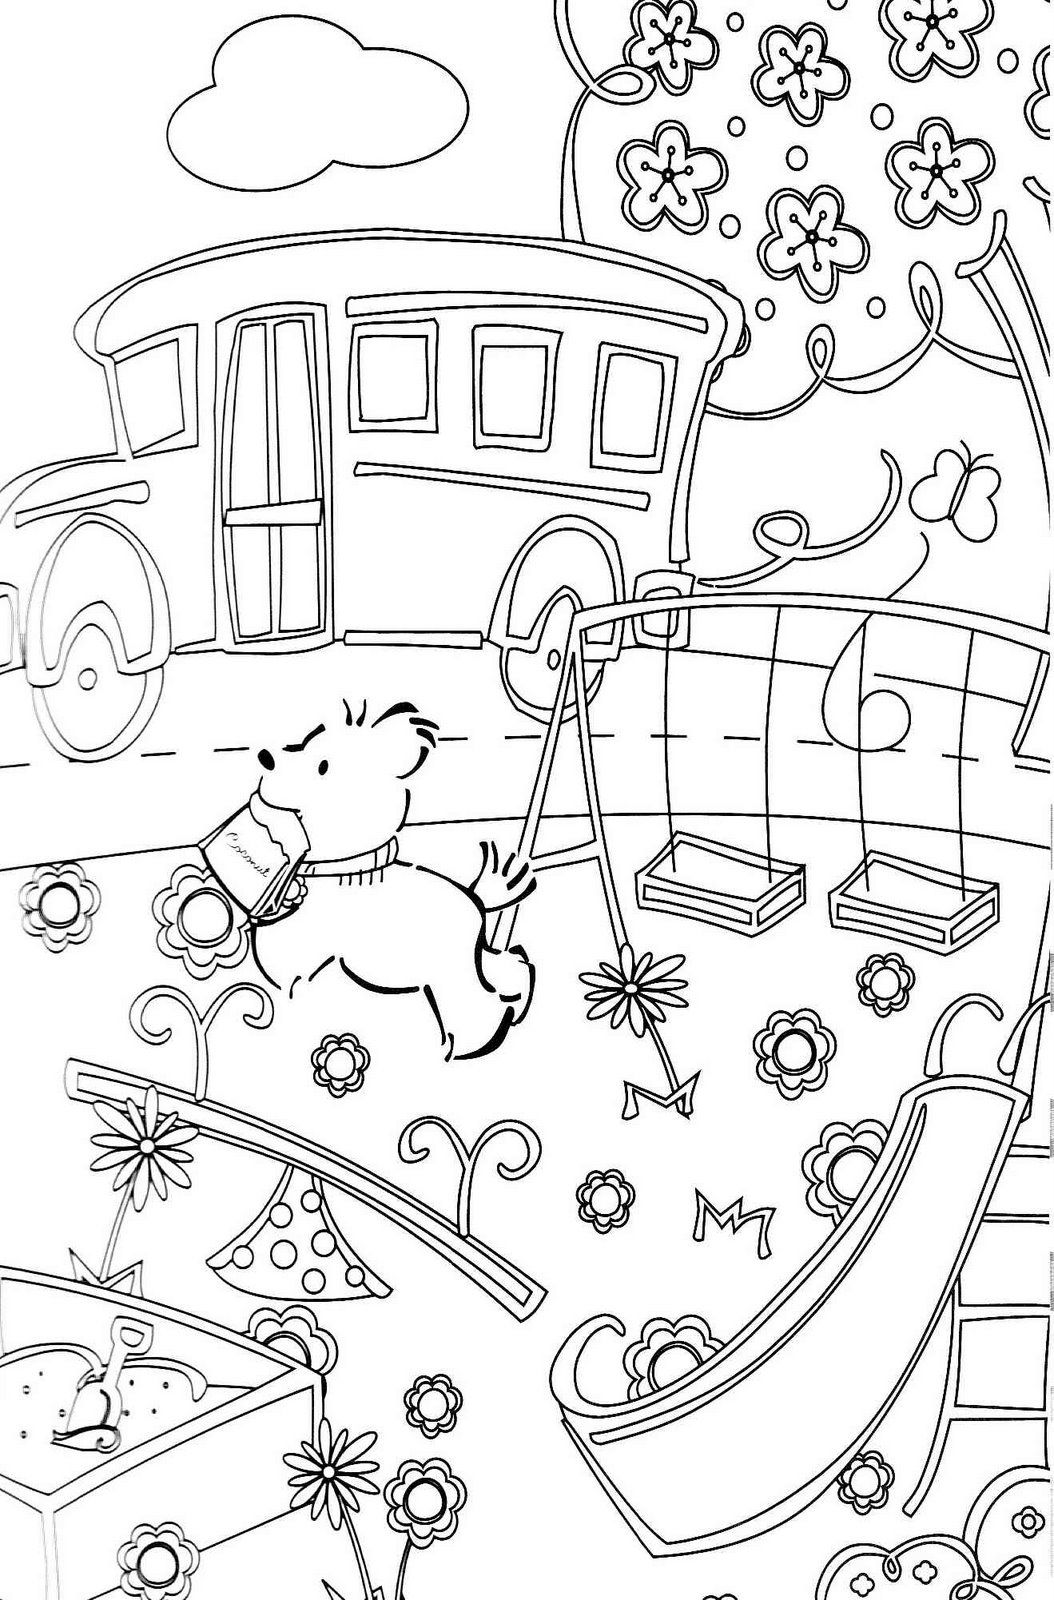 Coloring sheets for adults transport buses - American Girl Coloring Pages American Girl Coloring Page Bus Kids Coloring Pages